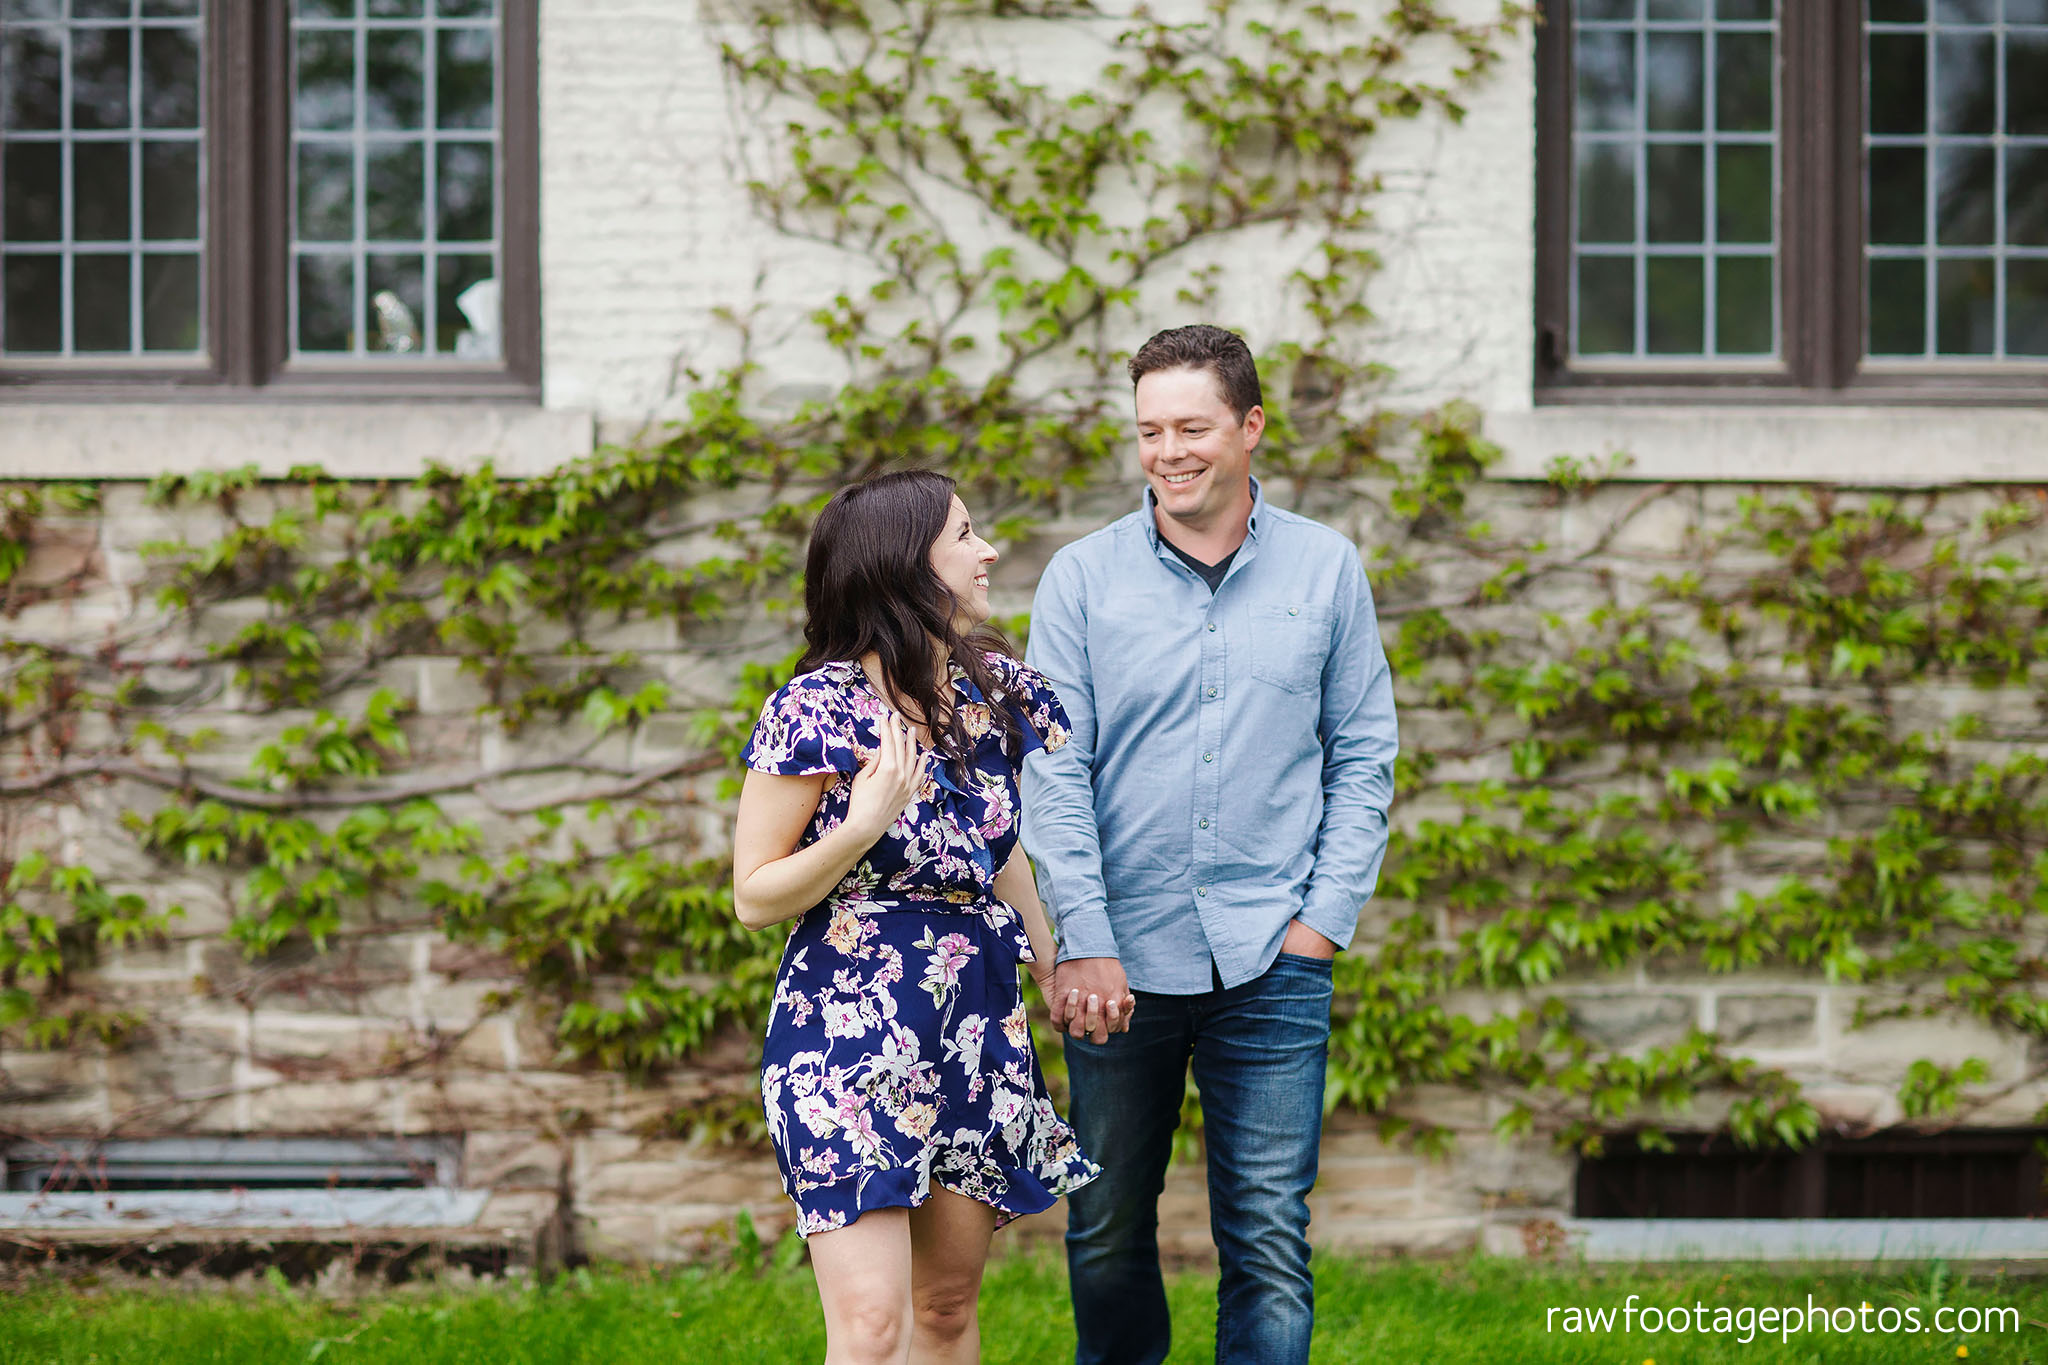 london_ontario_wedding_photographer-raw_footage_photography-engagement_session-campus_session-kings_college-uwo-spring_blooms003.jpg